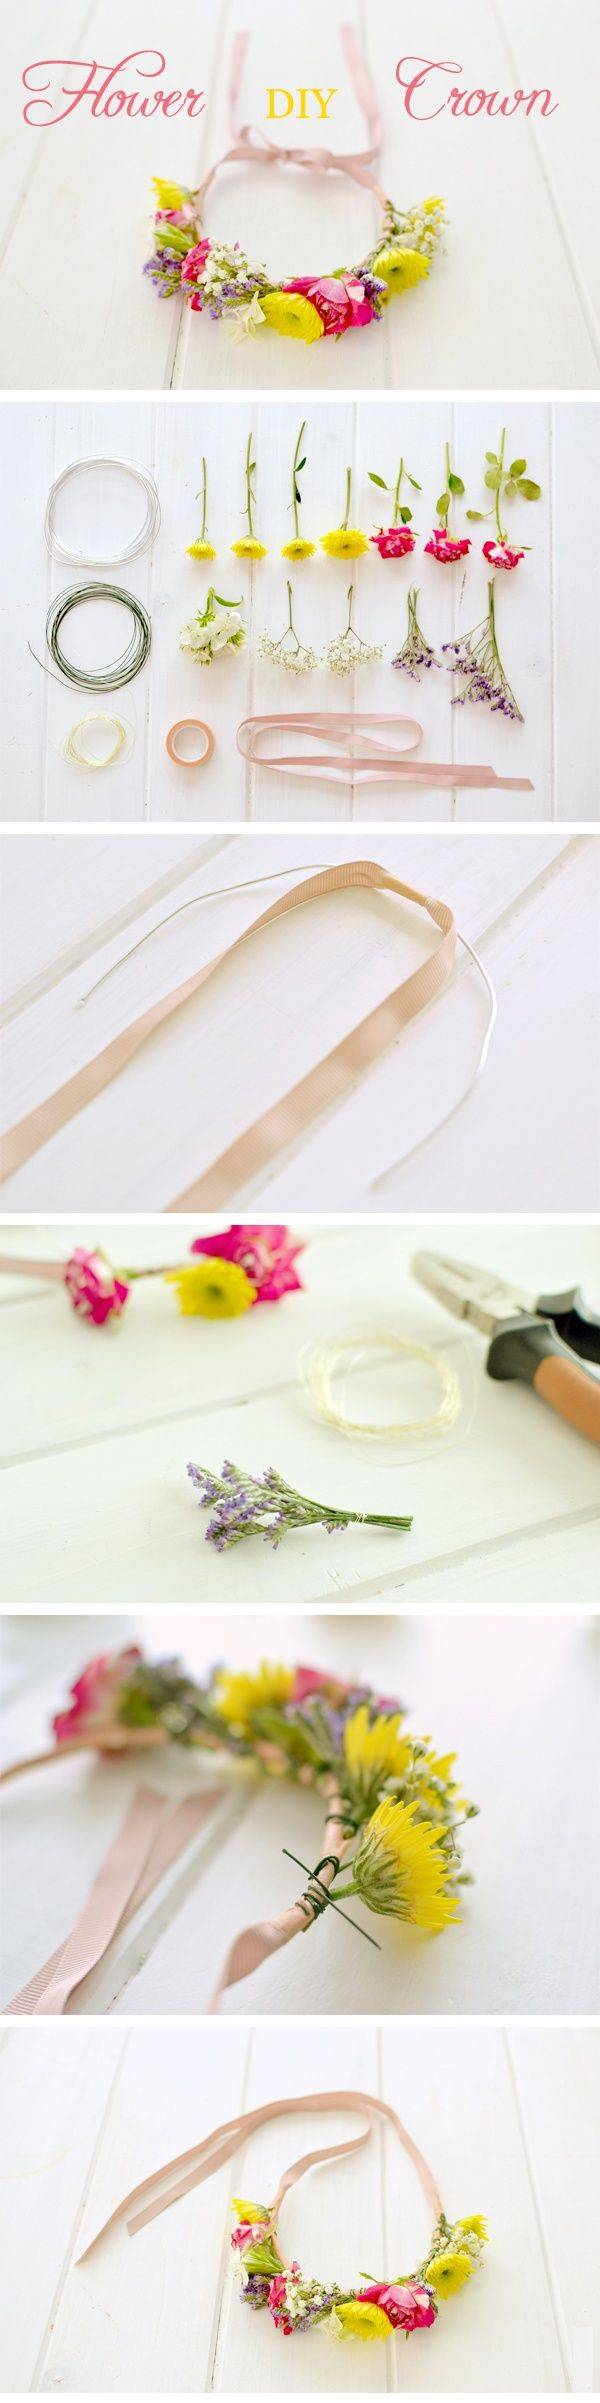 step by step how to flower crown